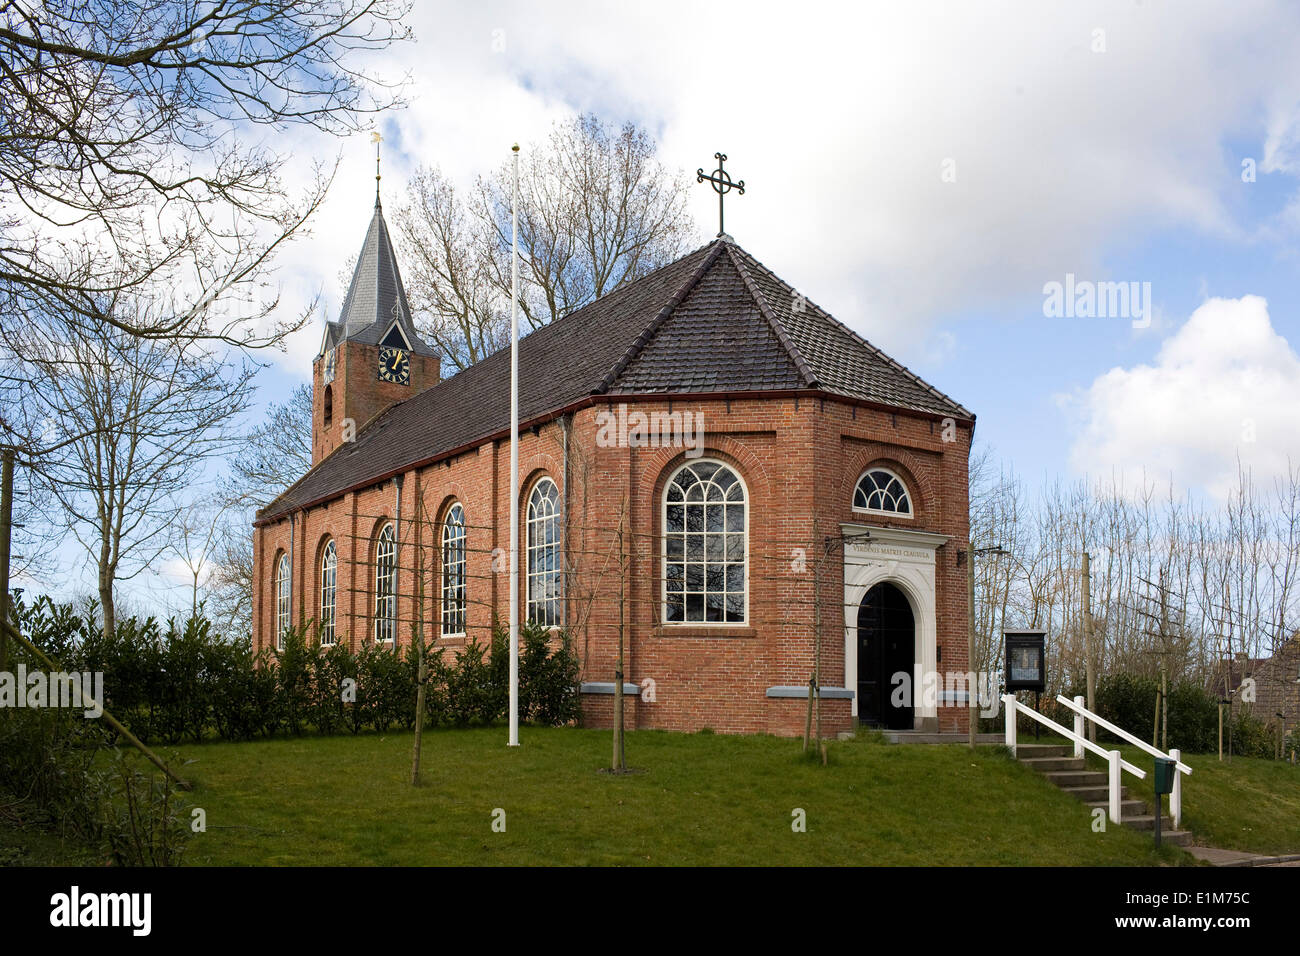 The Hermitage of Our Lady, the Garden Enclosed, situated in the former parish-church of Warfhuizen - Stock Image